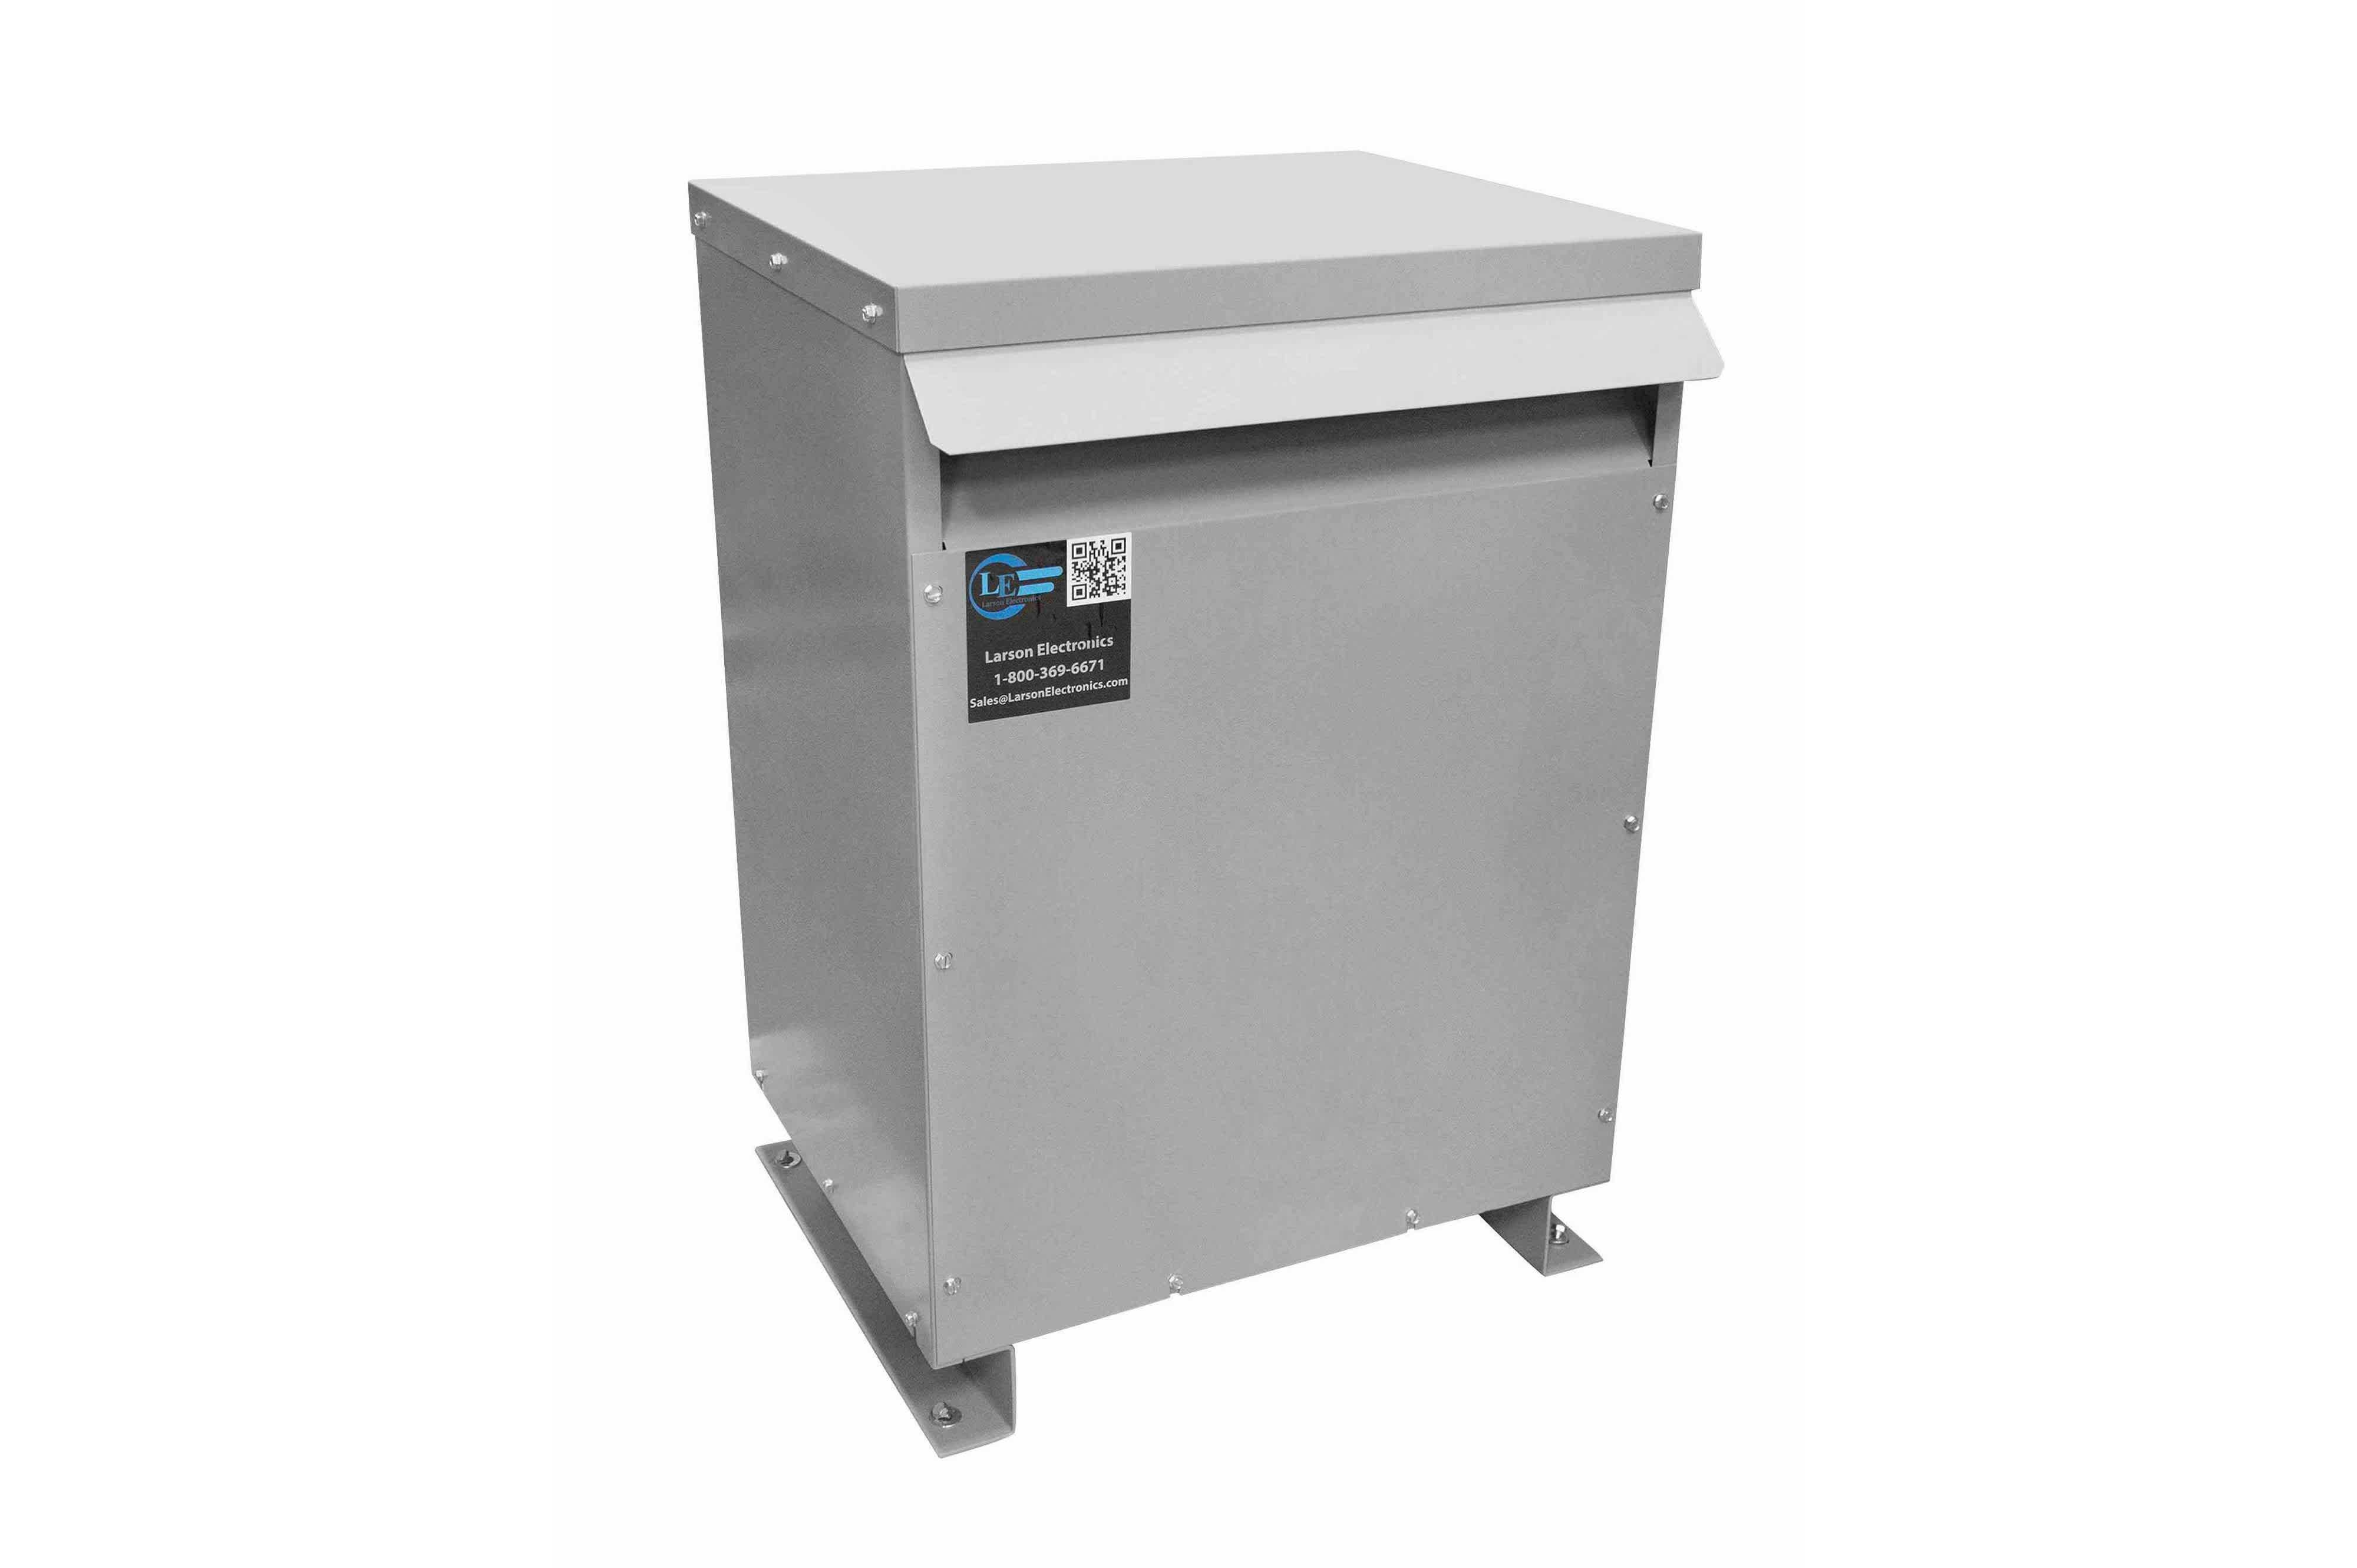 80 kVA 3PH Isolation Transformer, 575V Wye Primary, 208Y/120 Wye-N Secondary, N3R, Ventilated, 60 Hz